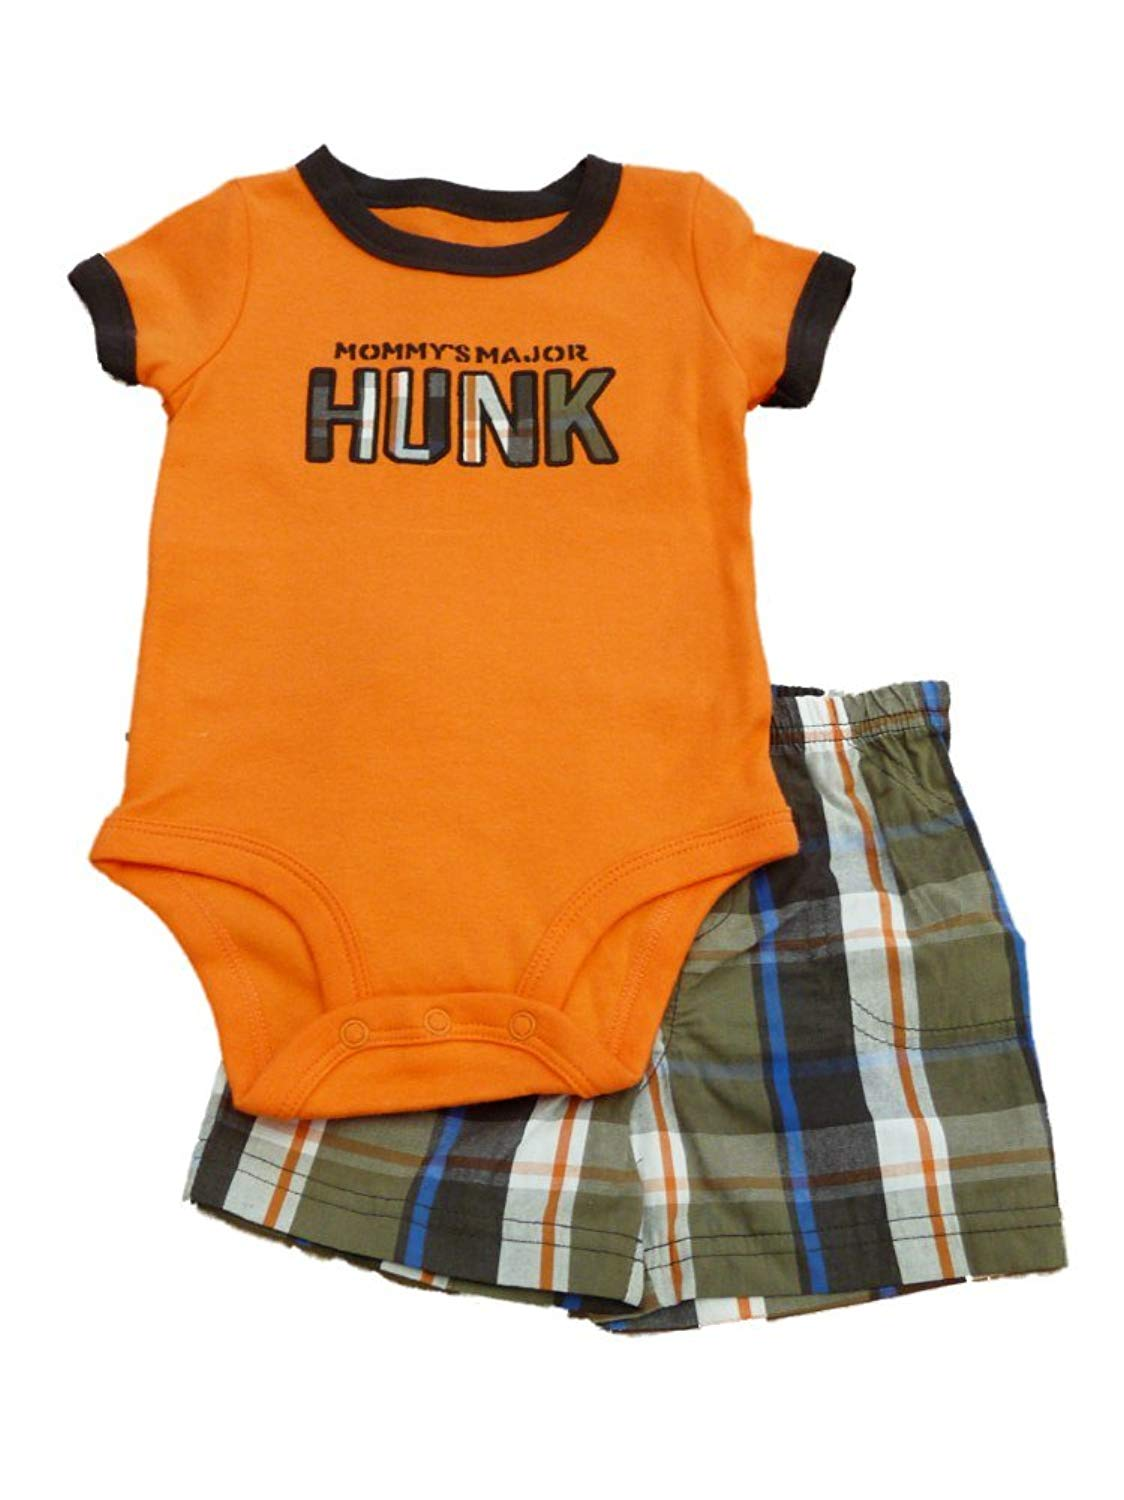 dc1b49e3aa Get Quotations · Carters Infant Boys Mommy's Hunk Orange Creeper & Brown  Plaid Shorts ...